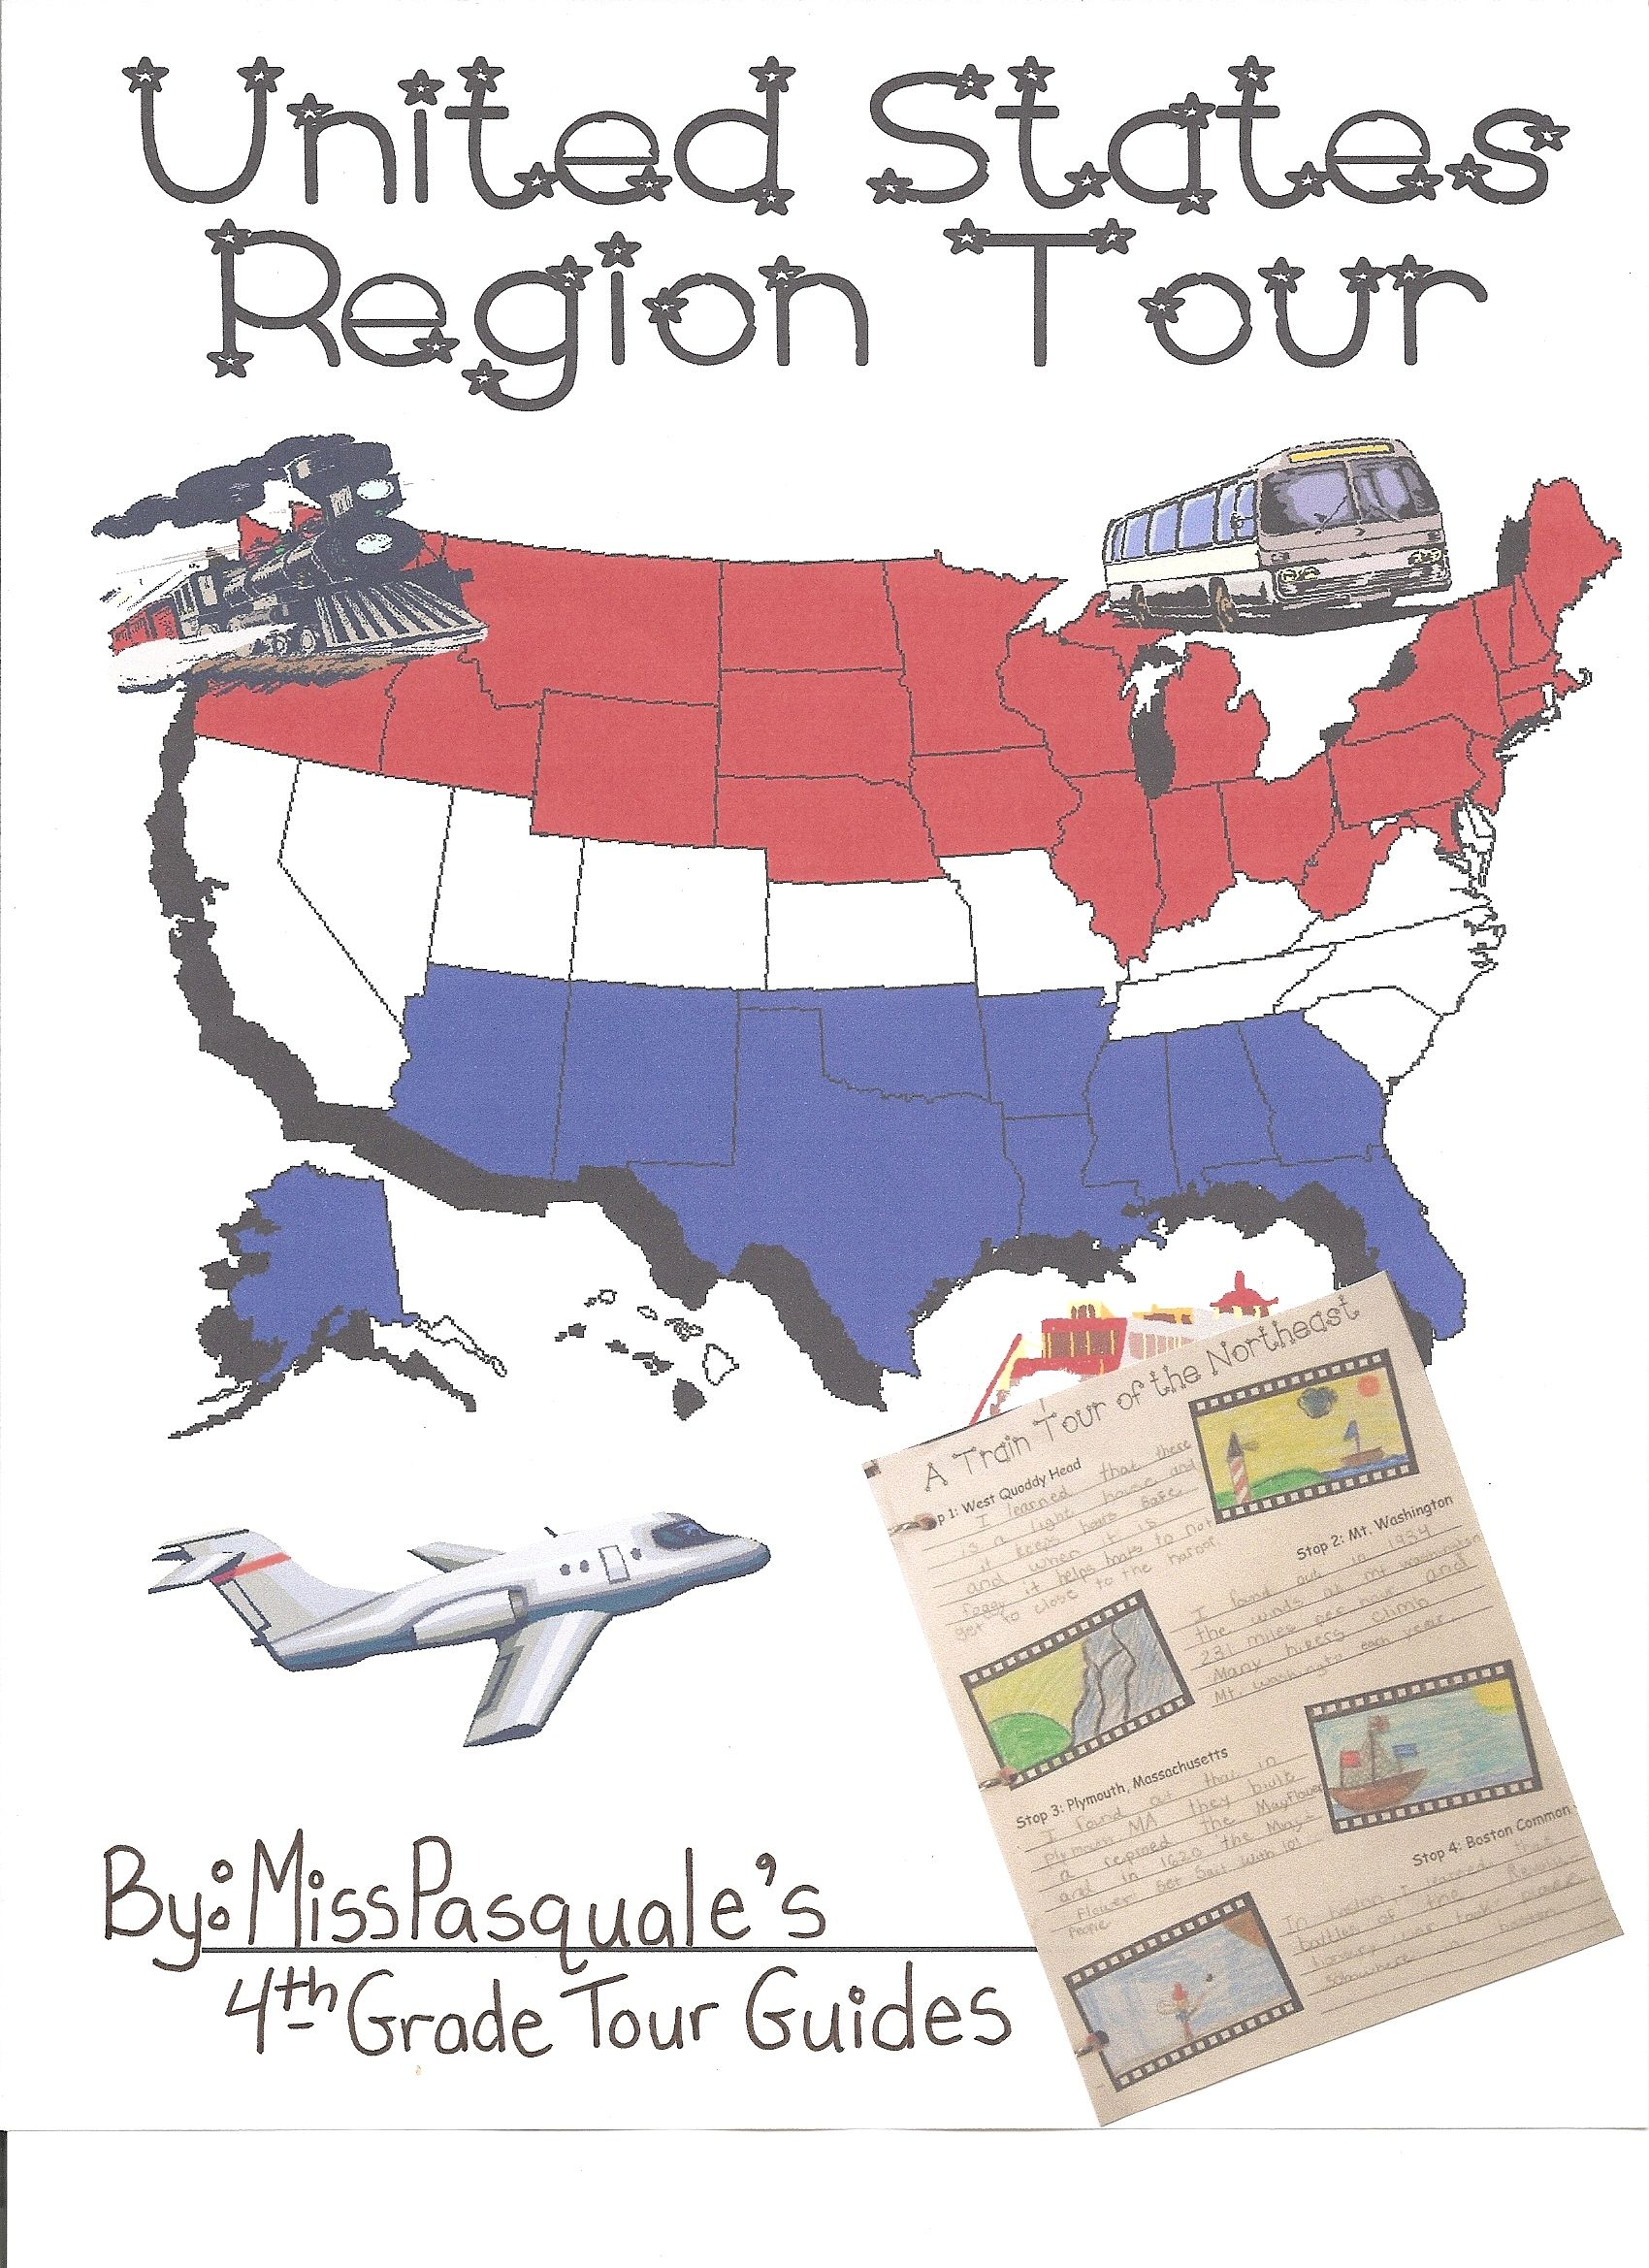 Webquest Tour The Regions Of The United States Created